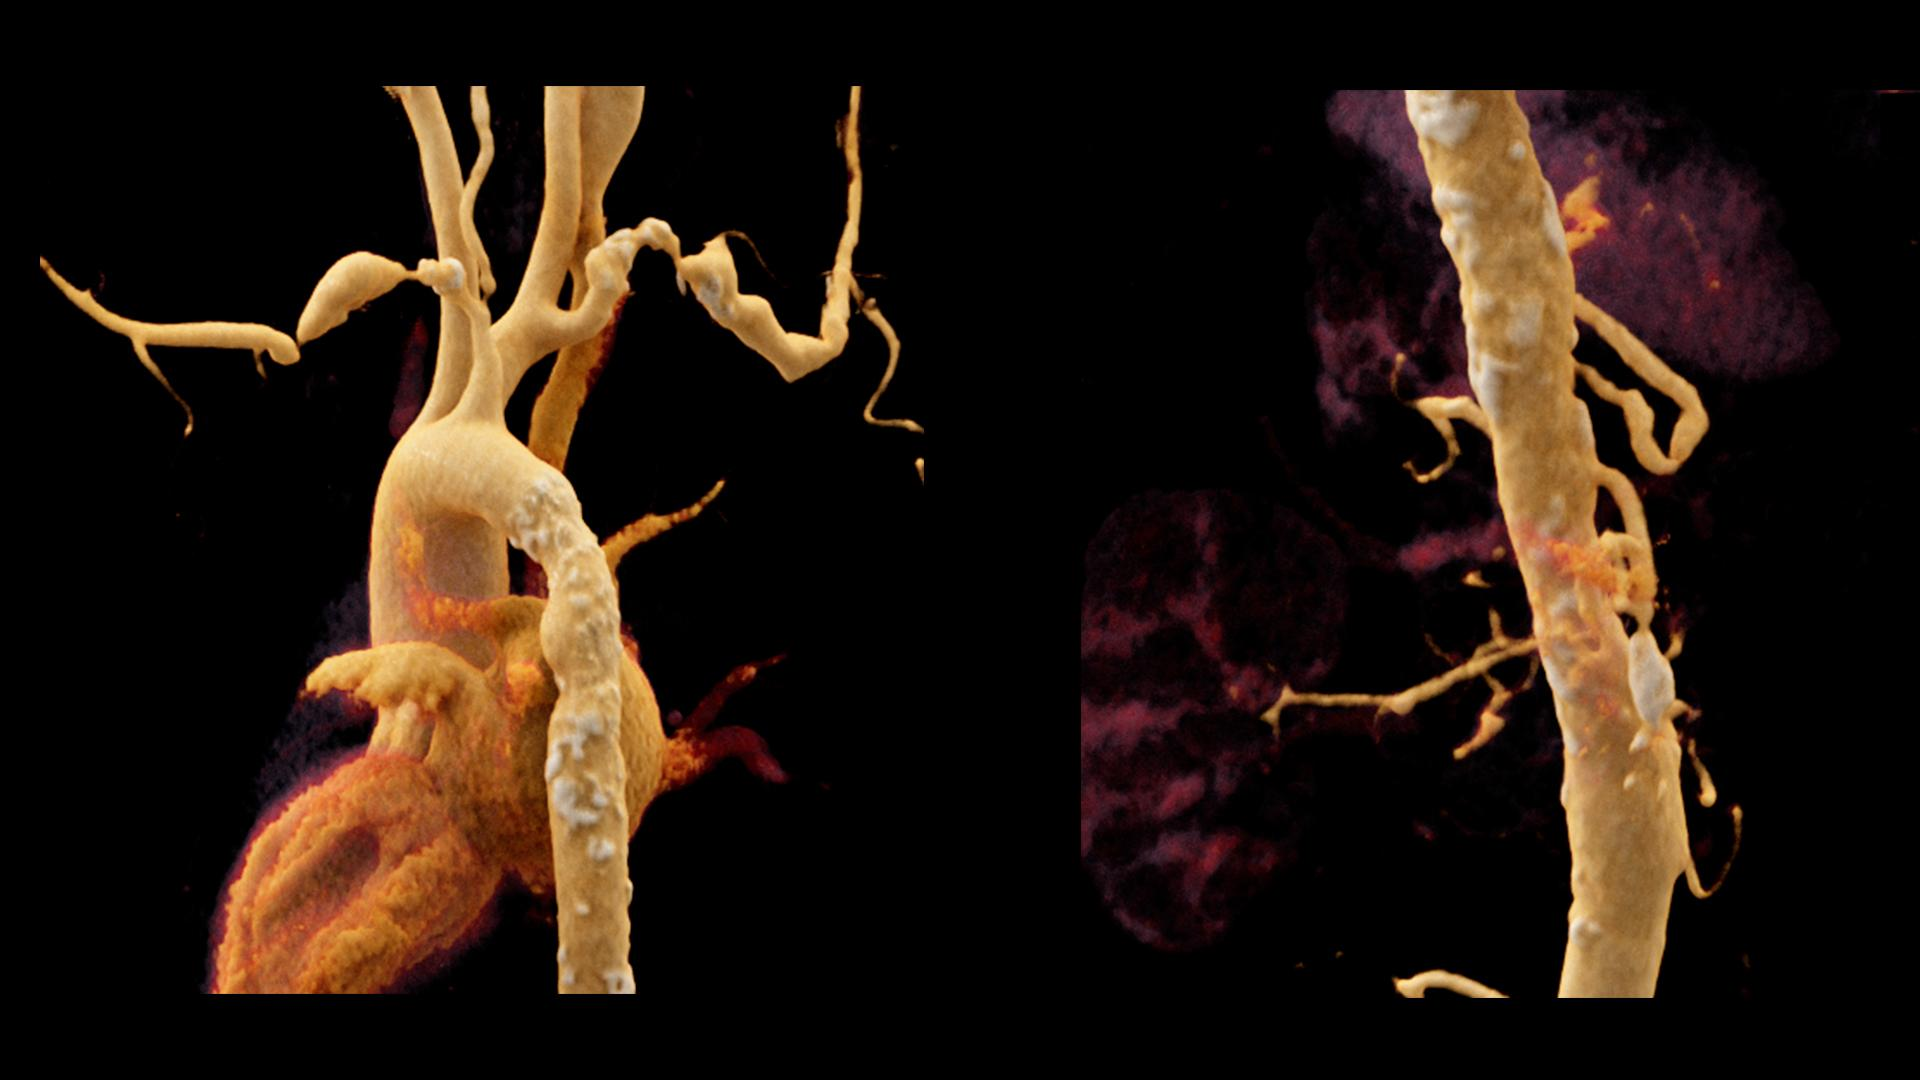 A whole body CT angiography was performed to further investigate a suspected Takayasu arteritis in 43-year old female patient.